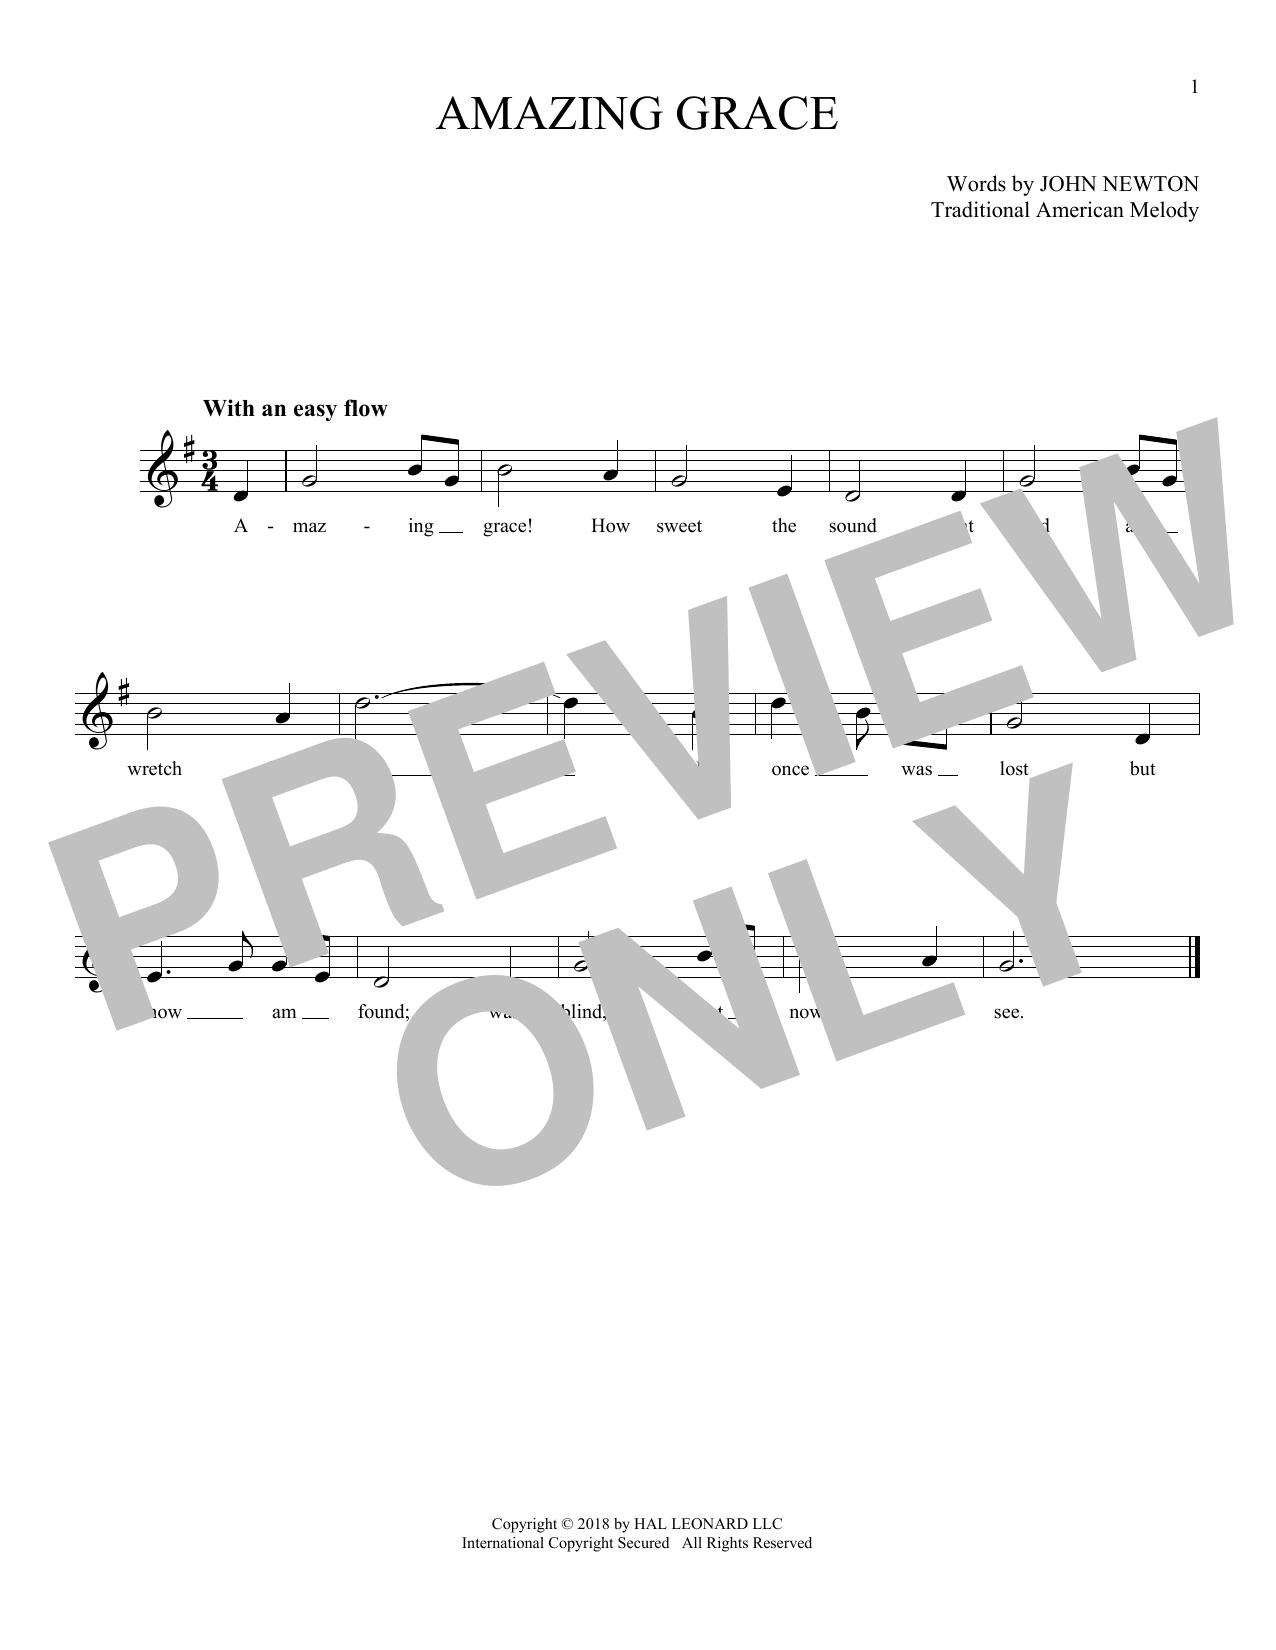 Traditional American Melody Amazing Grace Sheet Music Notes